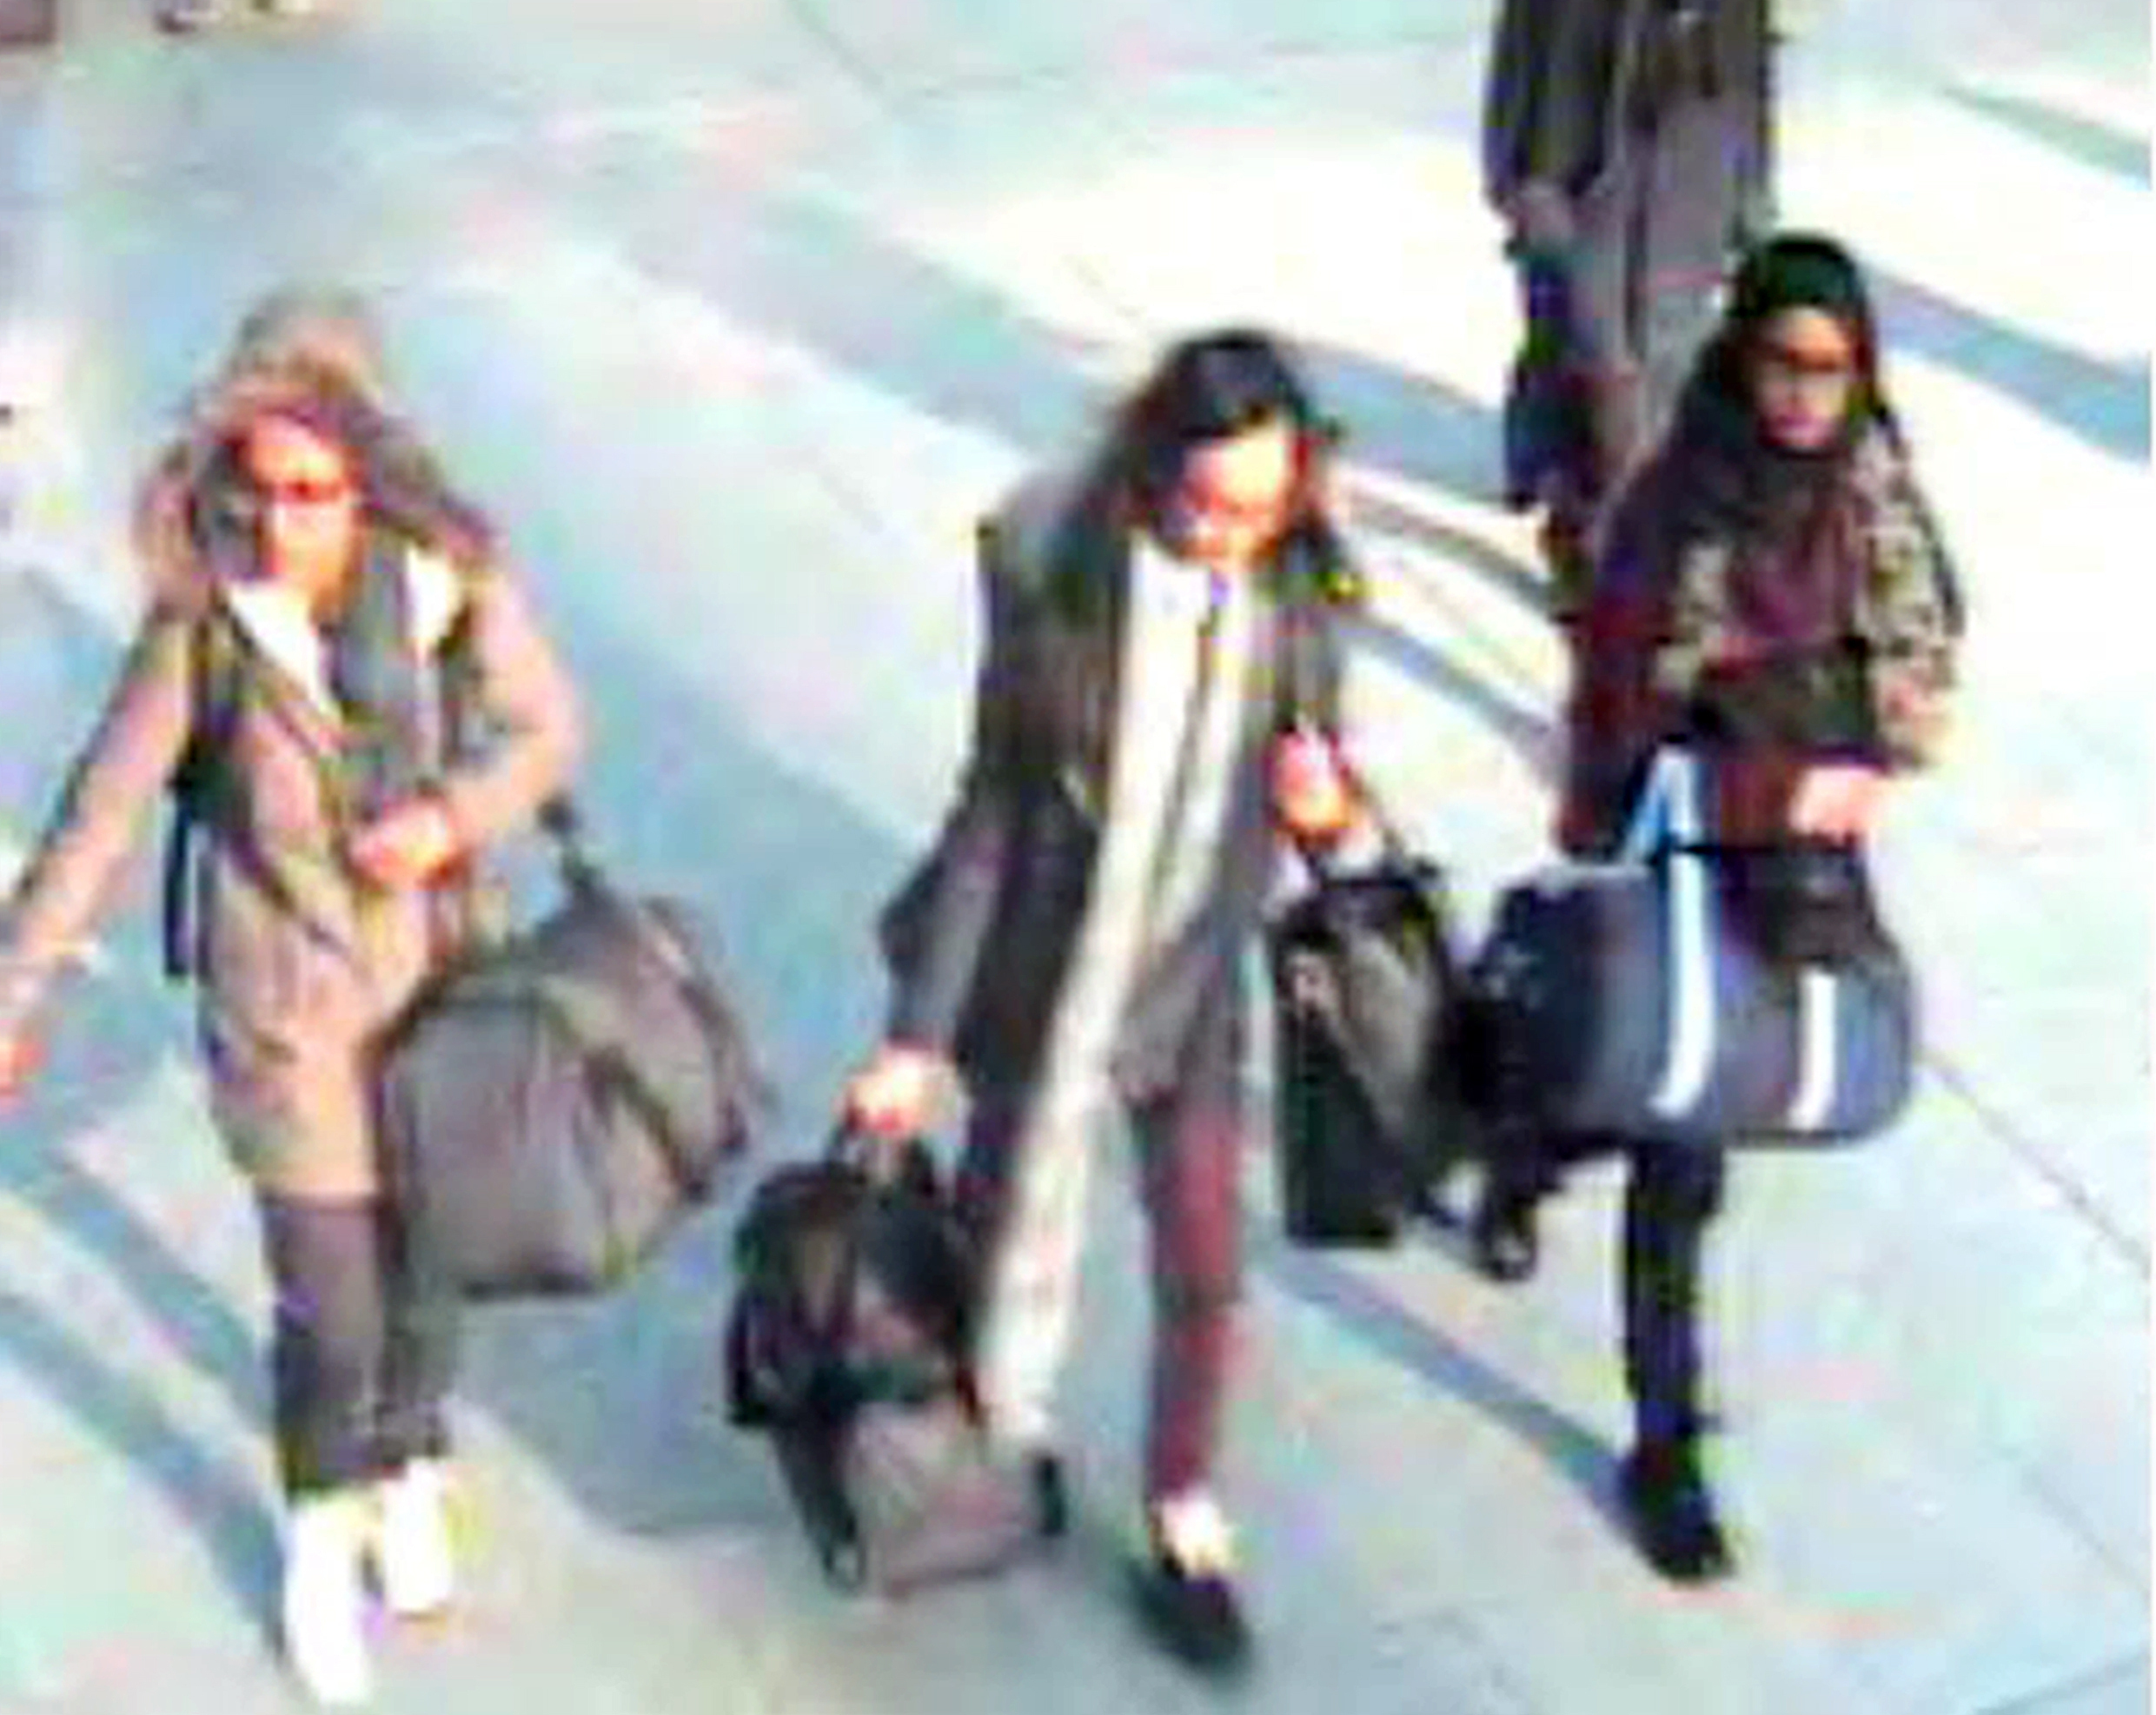 British schoolgirl who joined Islamic State with friends wants to come home